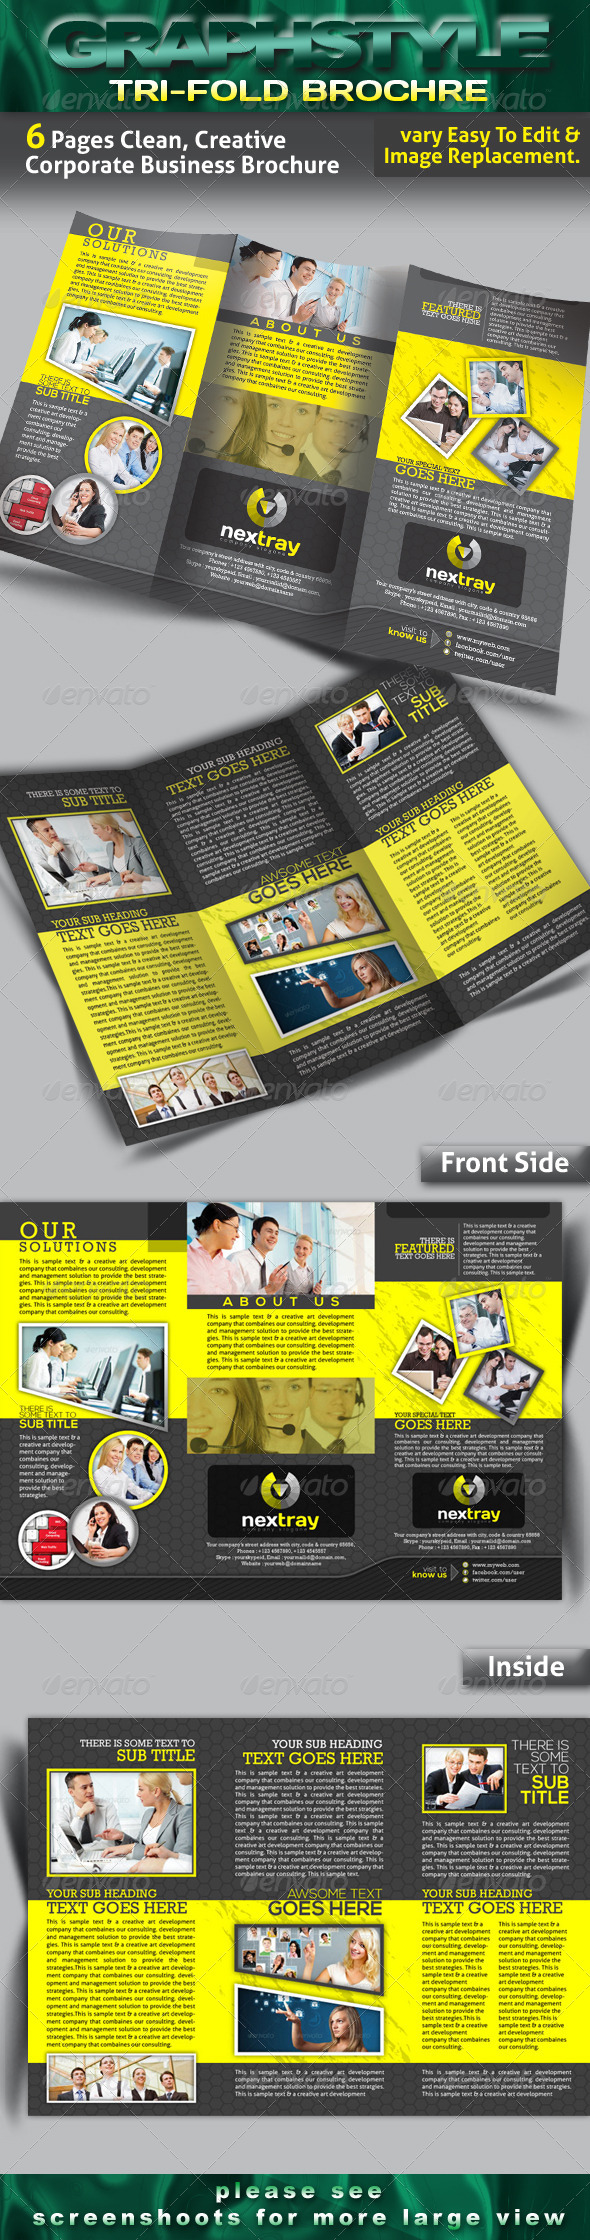 nextray Tri-fold Corporate Business Brochure - Brochures Print Templates